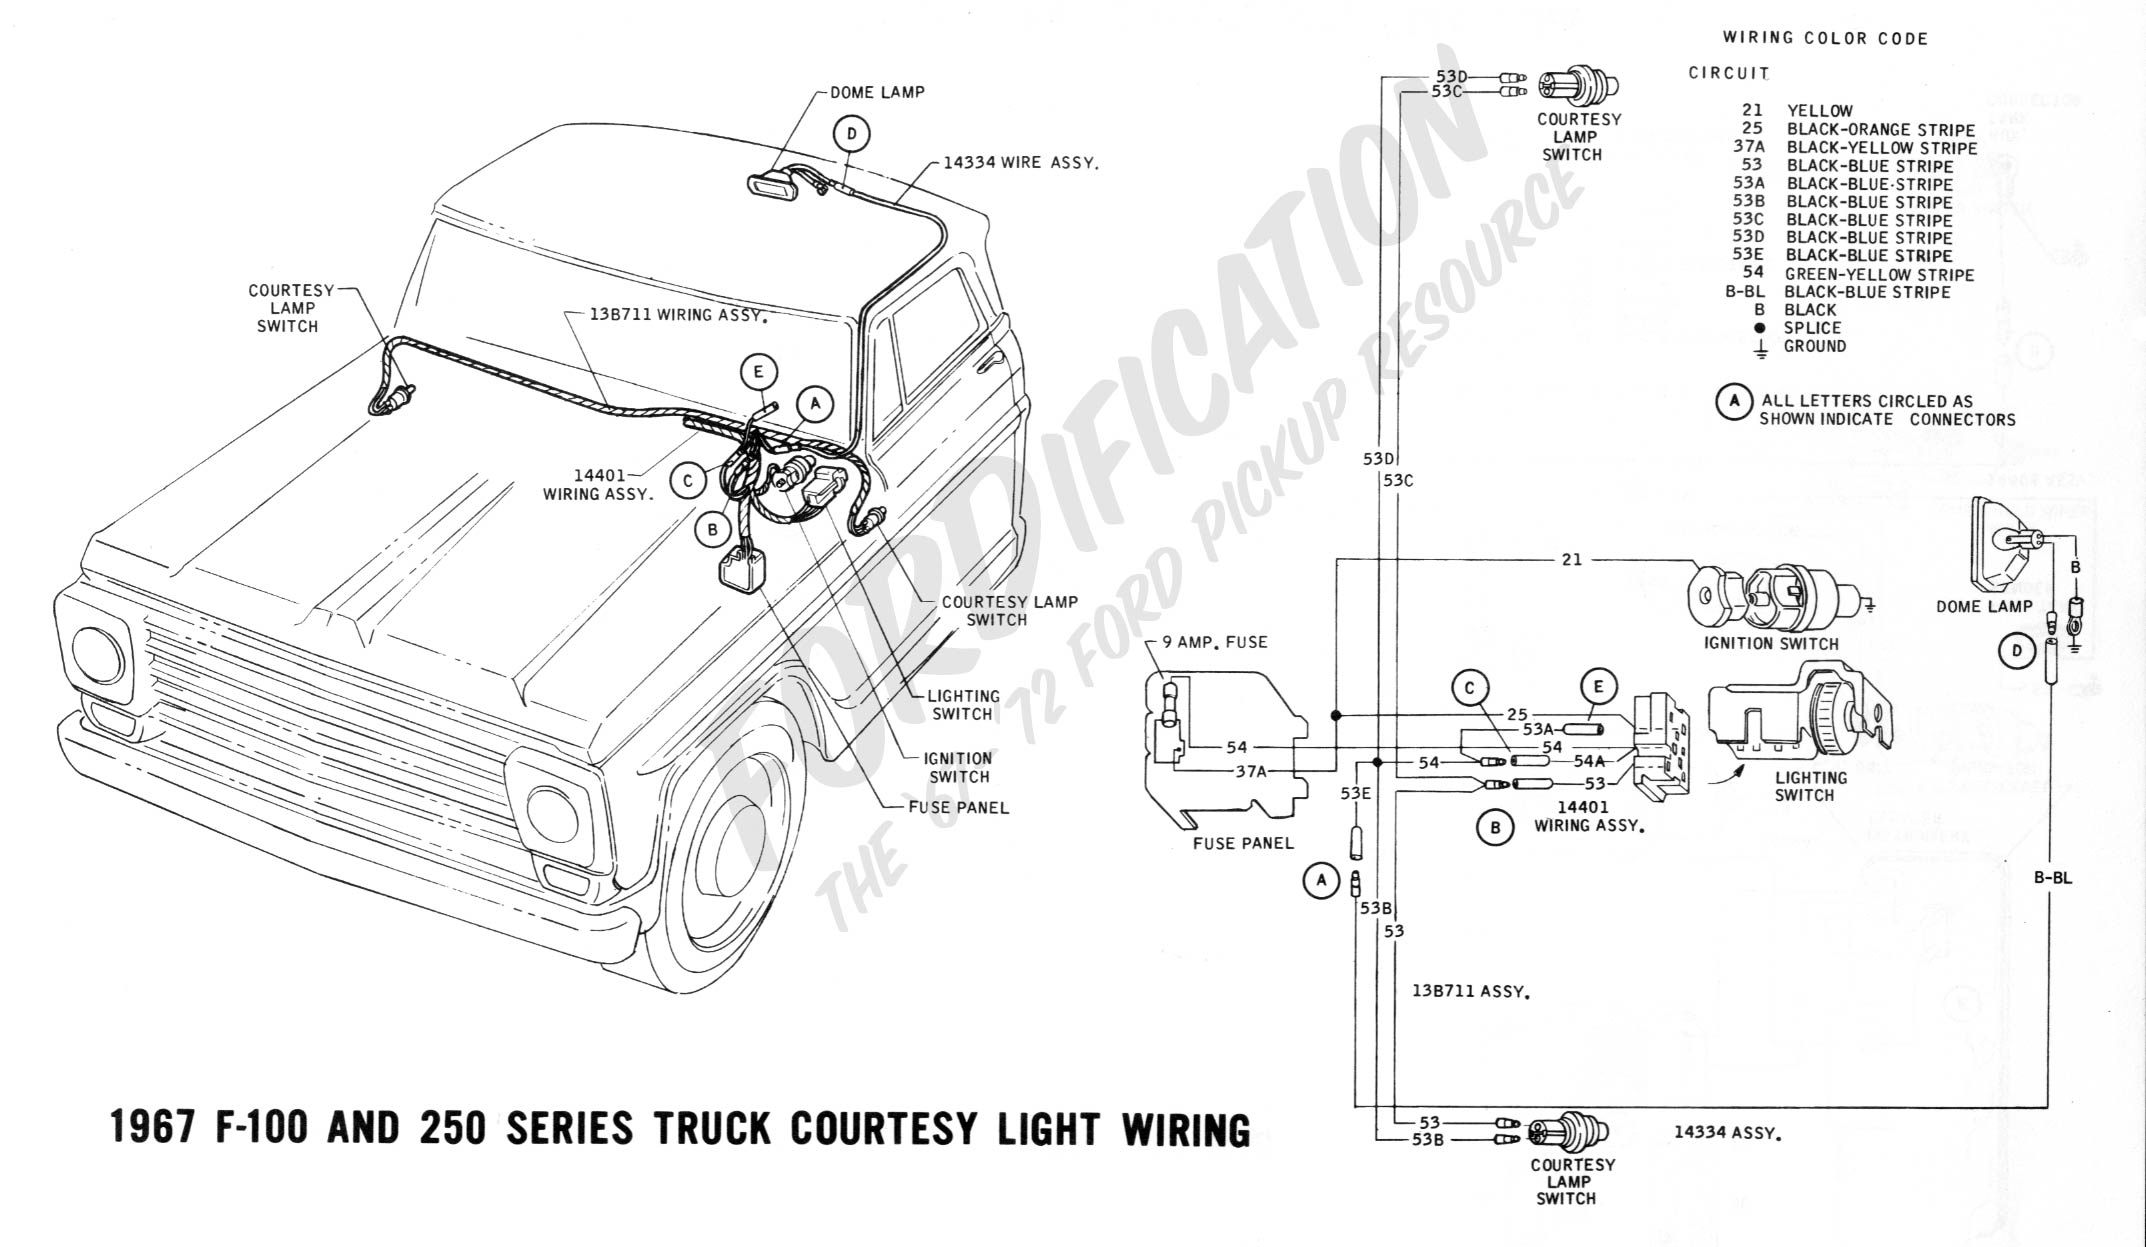 wiring 1967courtesylight wiring in ignition switch in 1966 f100 ford truck enthusiasts forums Ford E 350 Wiring Diagrams at mifinder.co